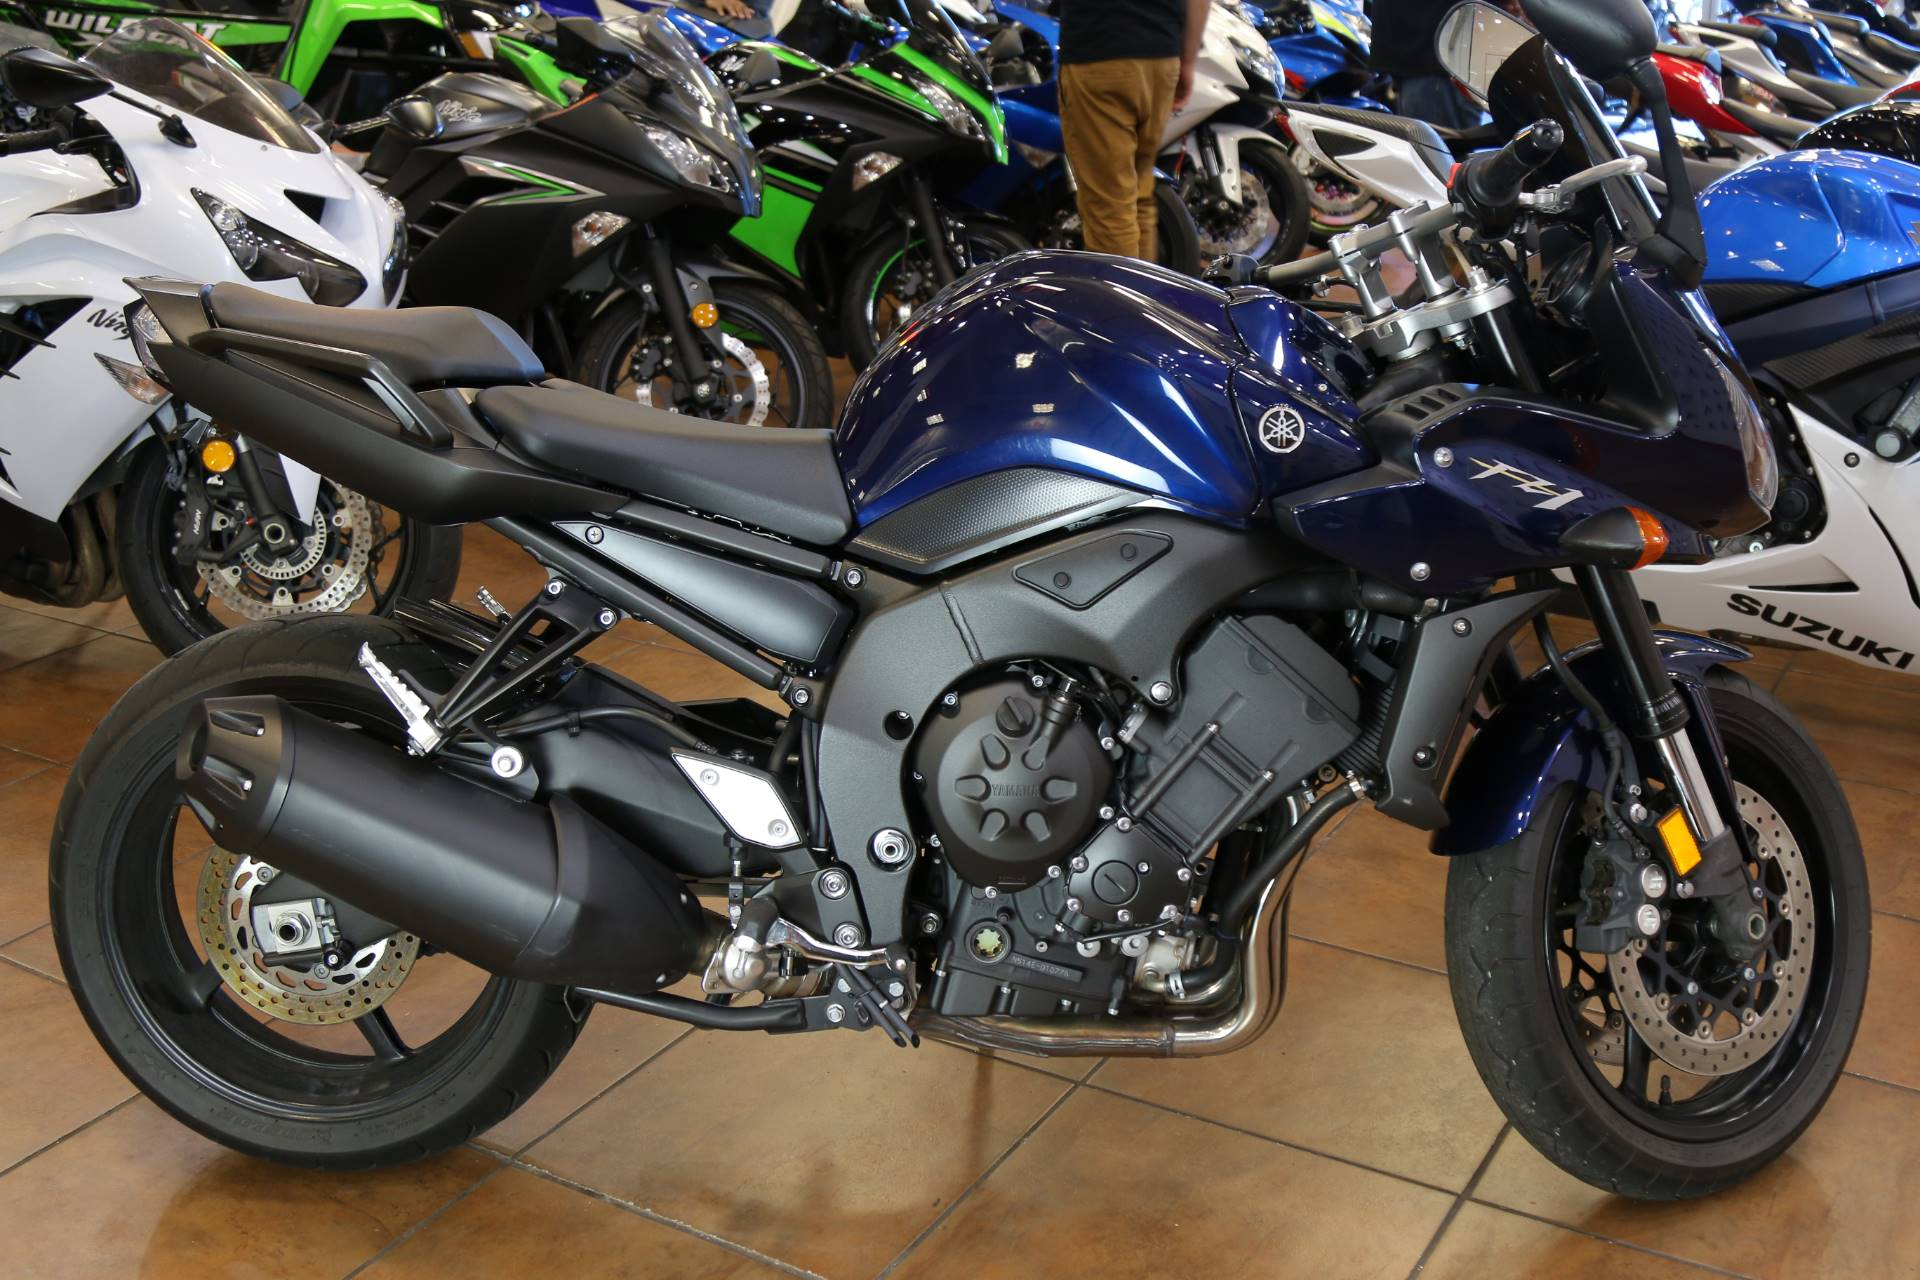 Used 2013 Yamaha FZ1 Motorcycles in Pinellas Park, FL